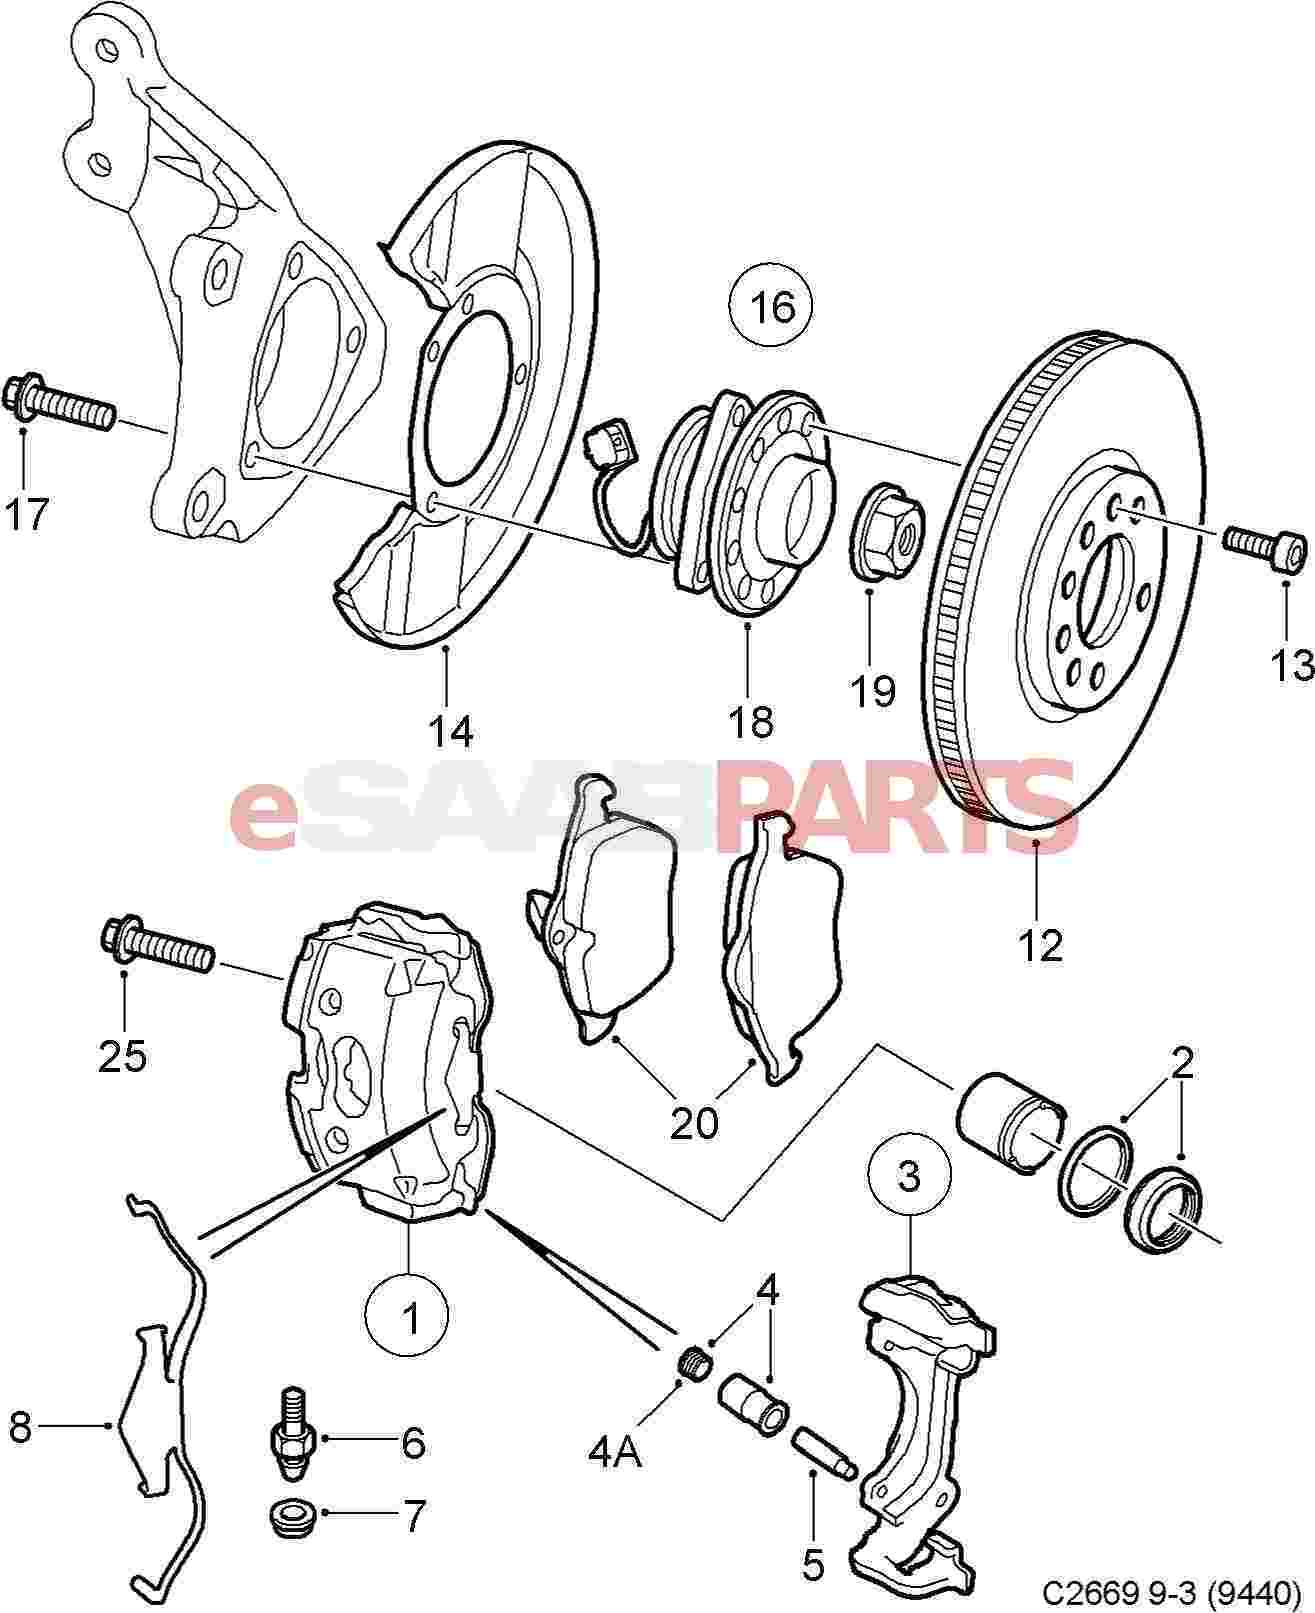 93176375  SAAB Brake Caliper  Front Left  314MM  Saab    Parts    from eSaabParts